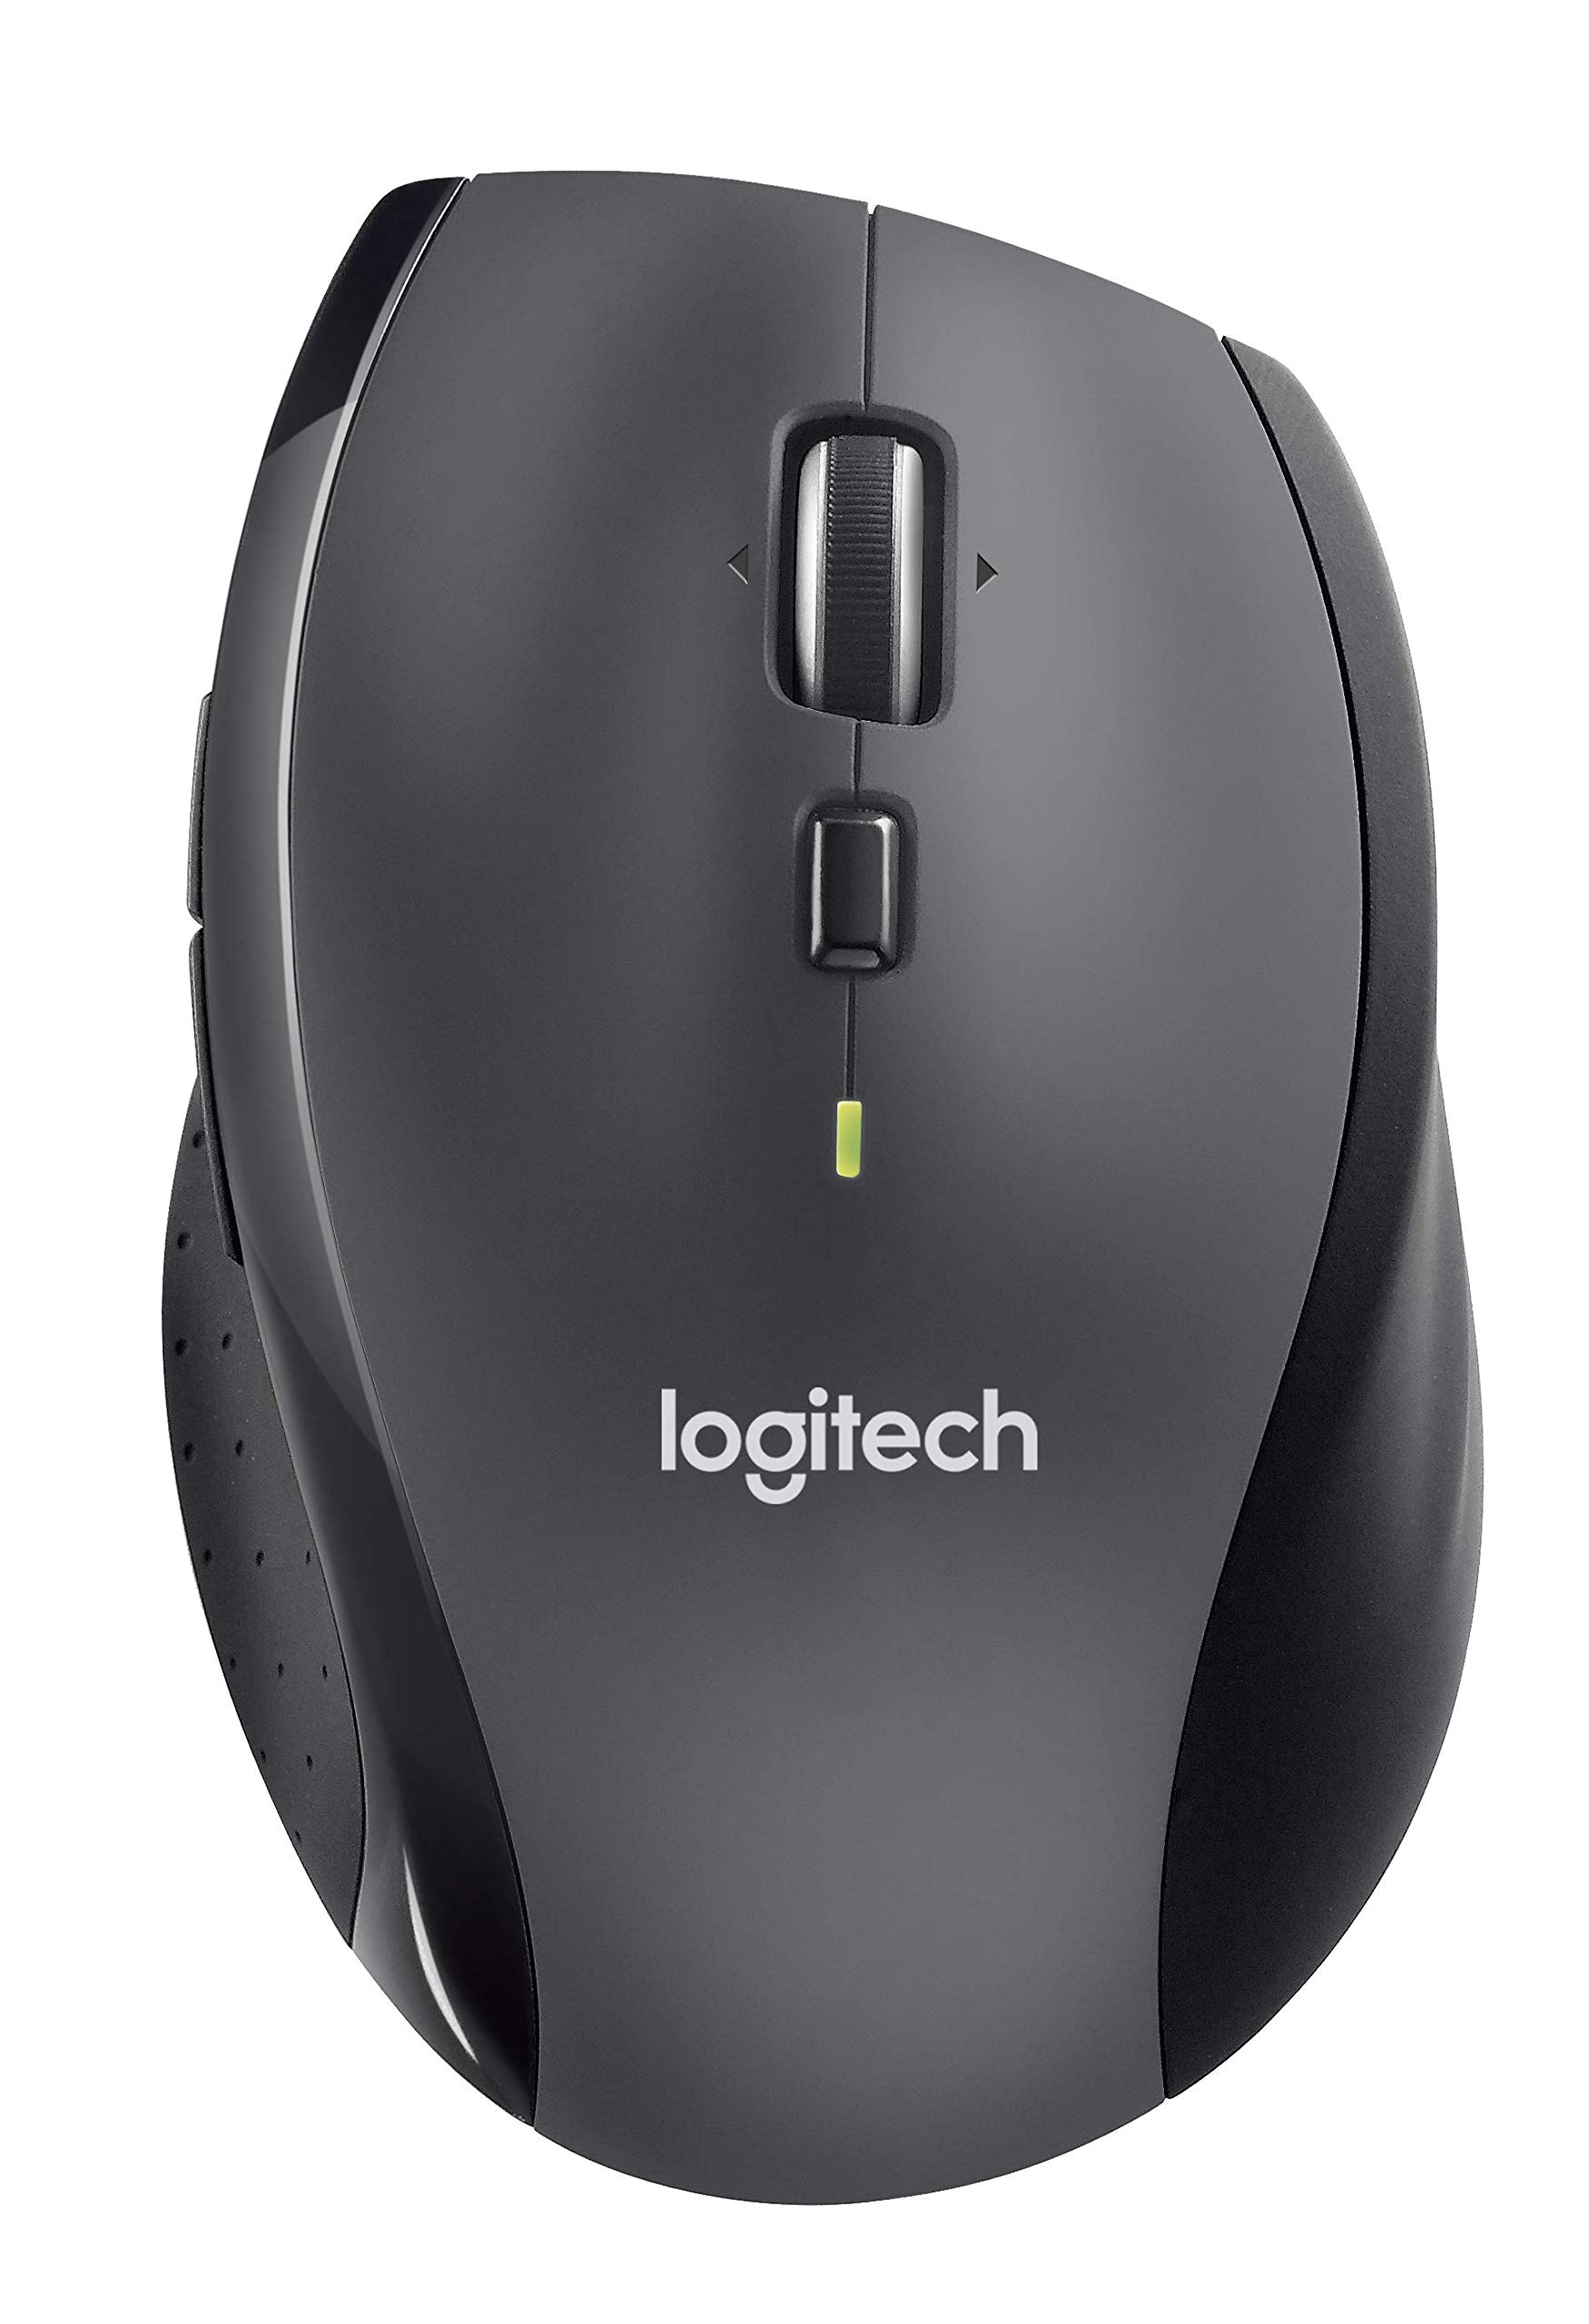 로지텍 M705 마라톤 무선 마우스 Logitech M705 Marathon Wireless Mouse – Long 3 Year Battery Life, Ergonomic Sculpted Right-hand Shape, Hyper-fast Scrolling and USB Unifying Receiver, for Computers and Laptops, Da